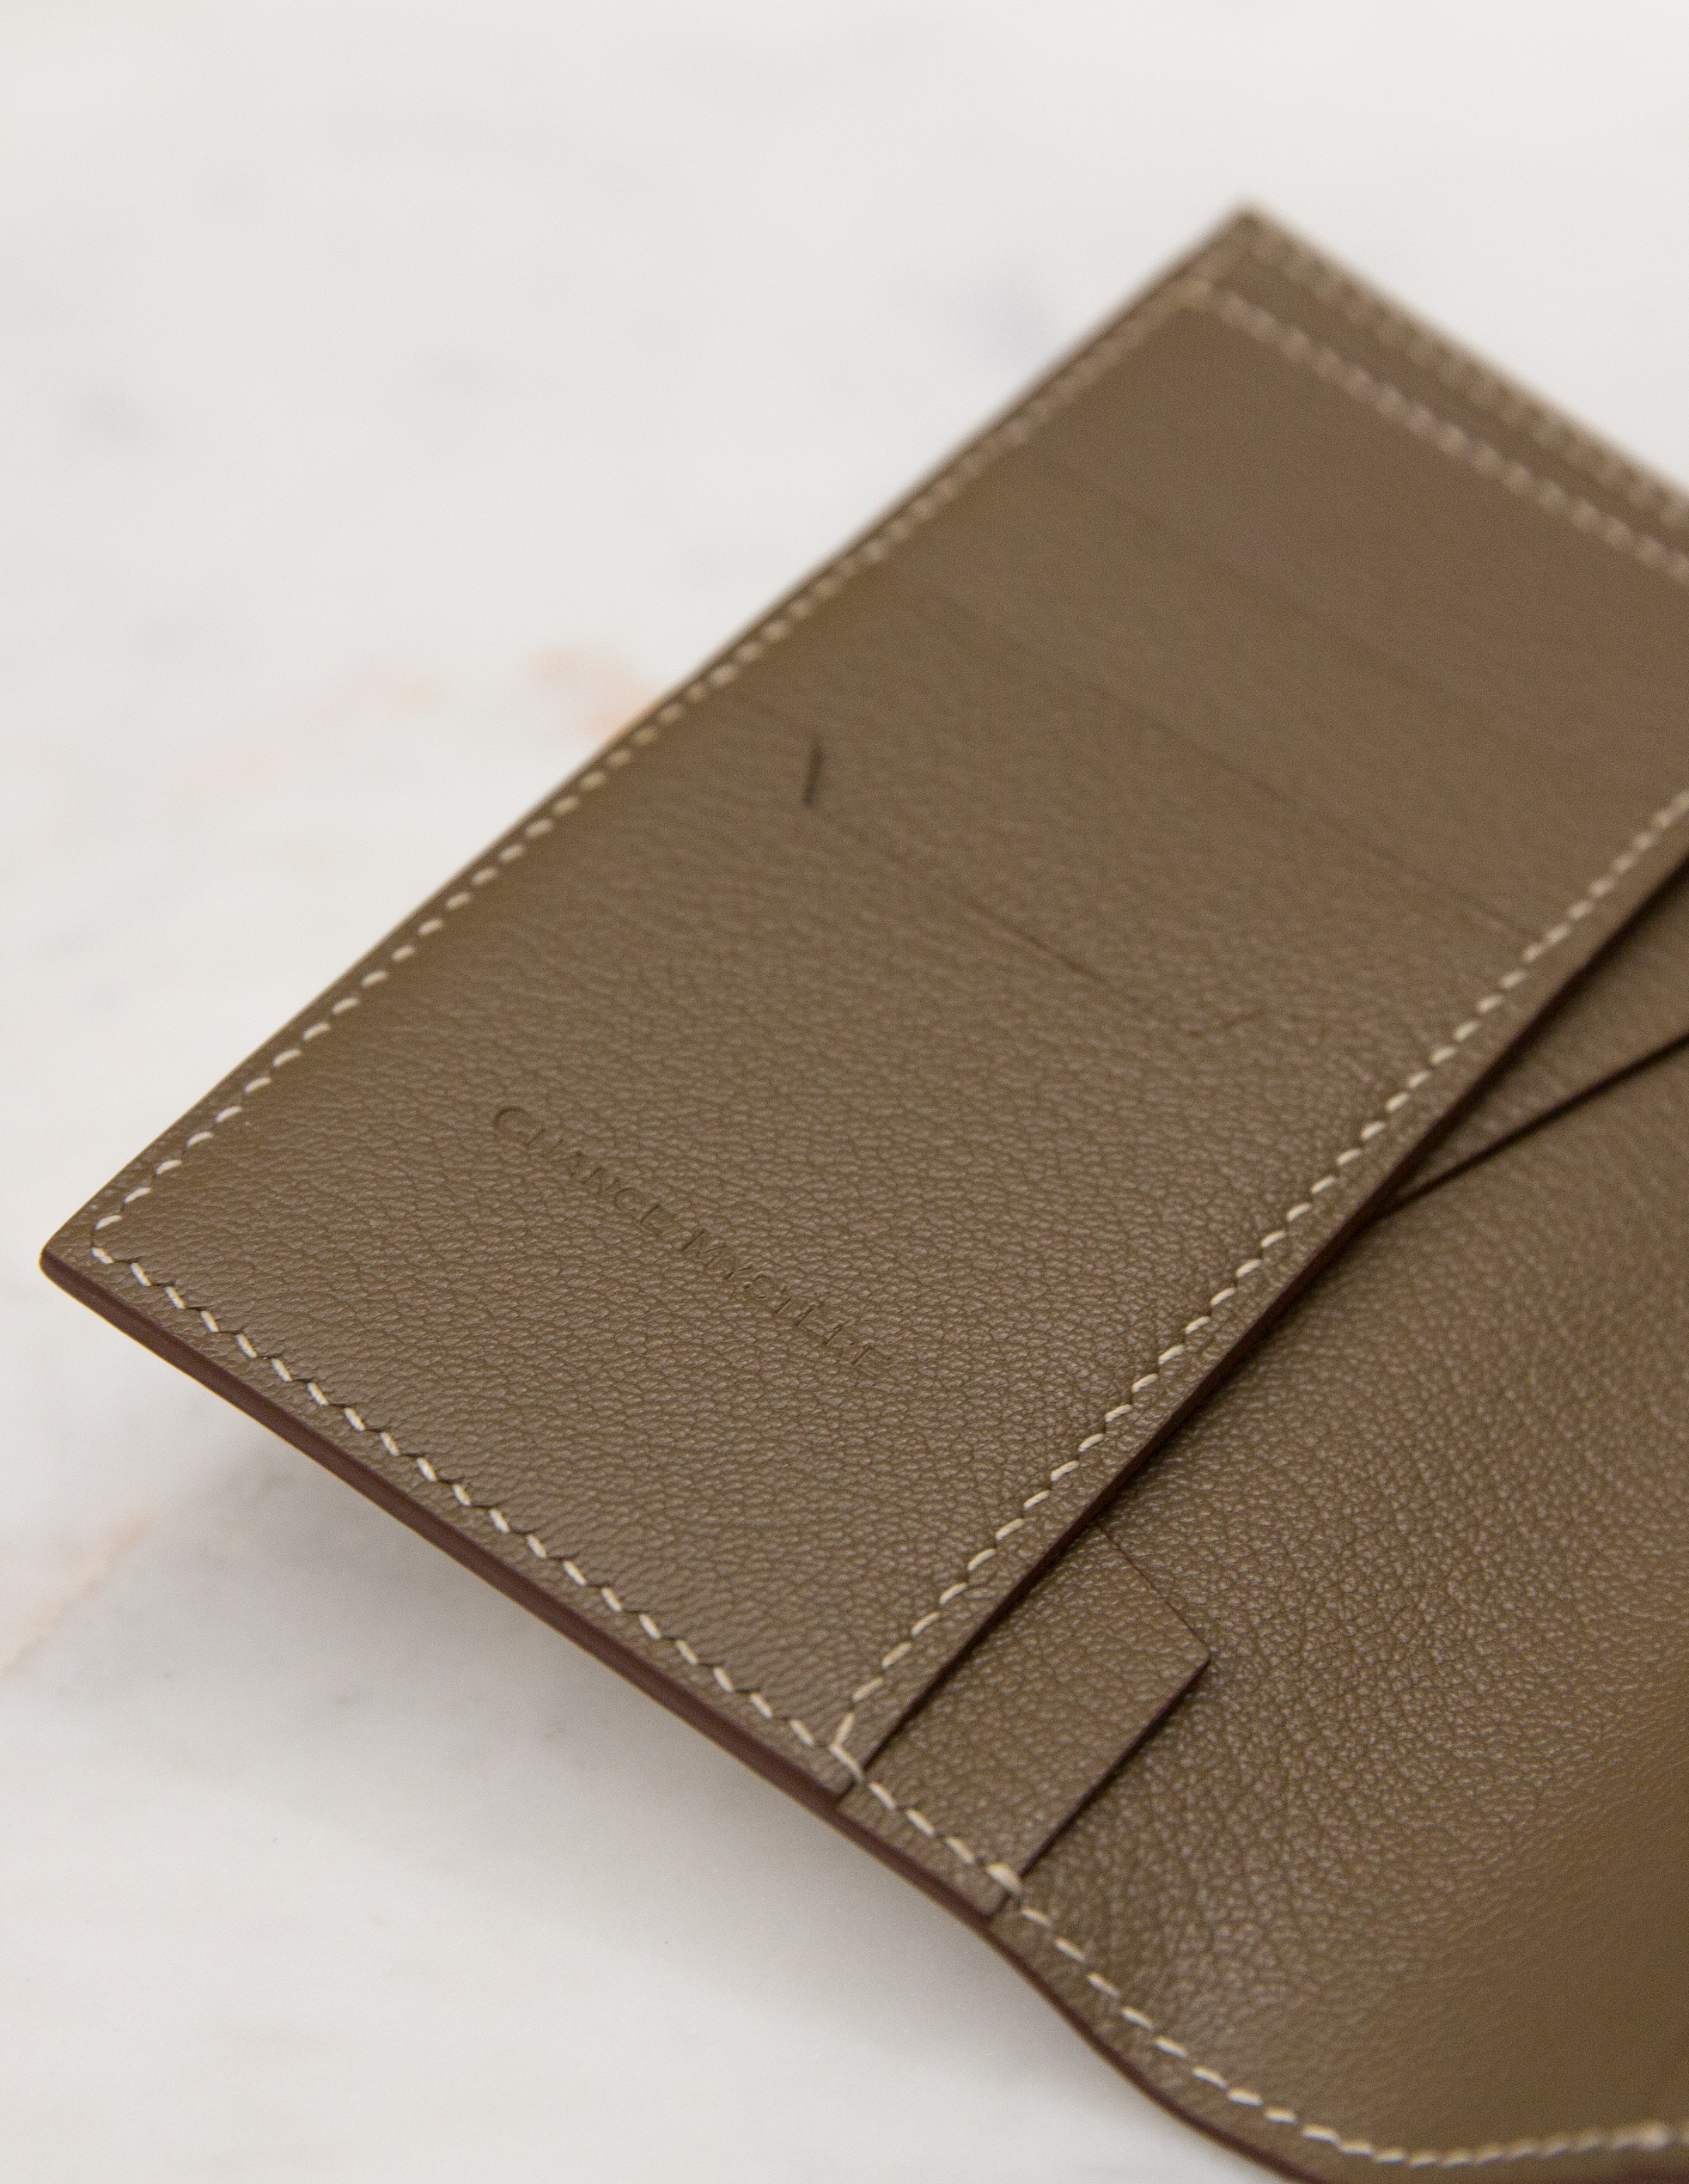 Passport Cover - White/Brown by Chance Mystère on curated-crowd.com